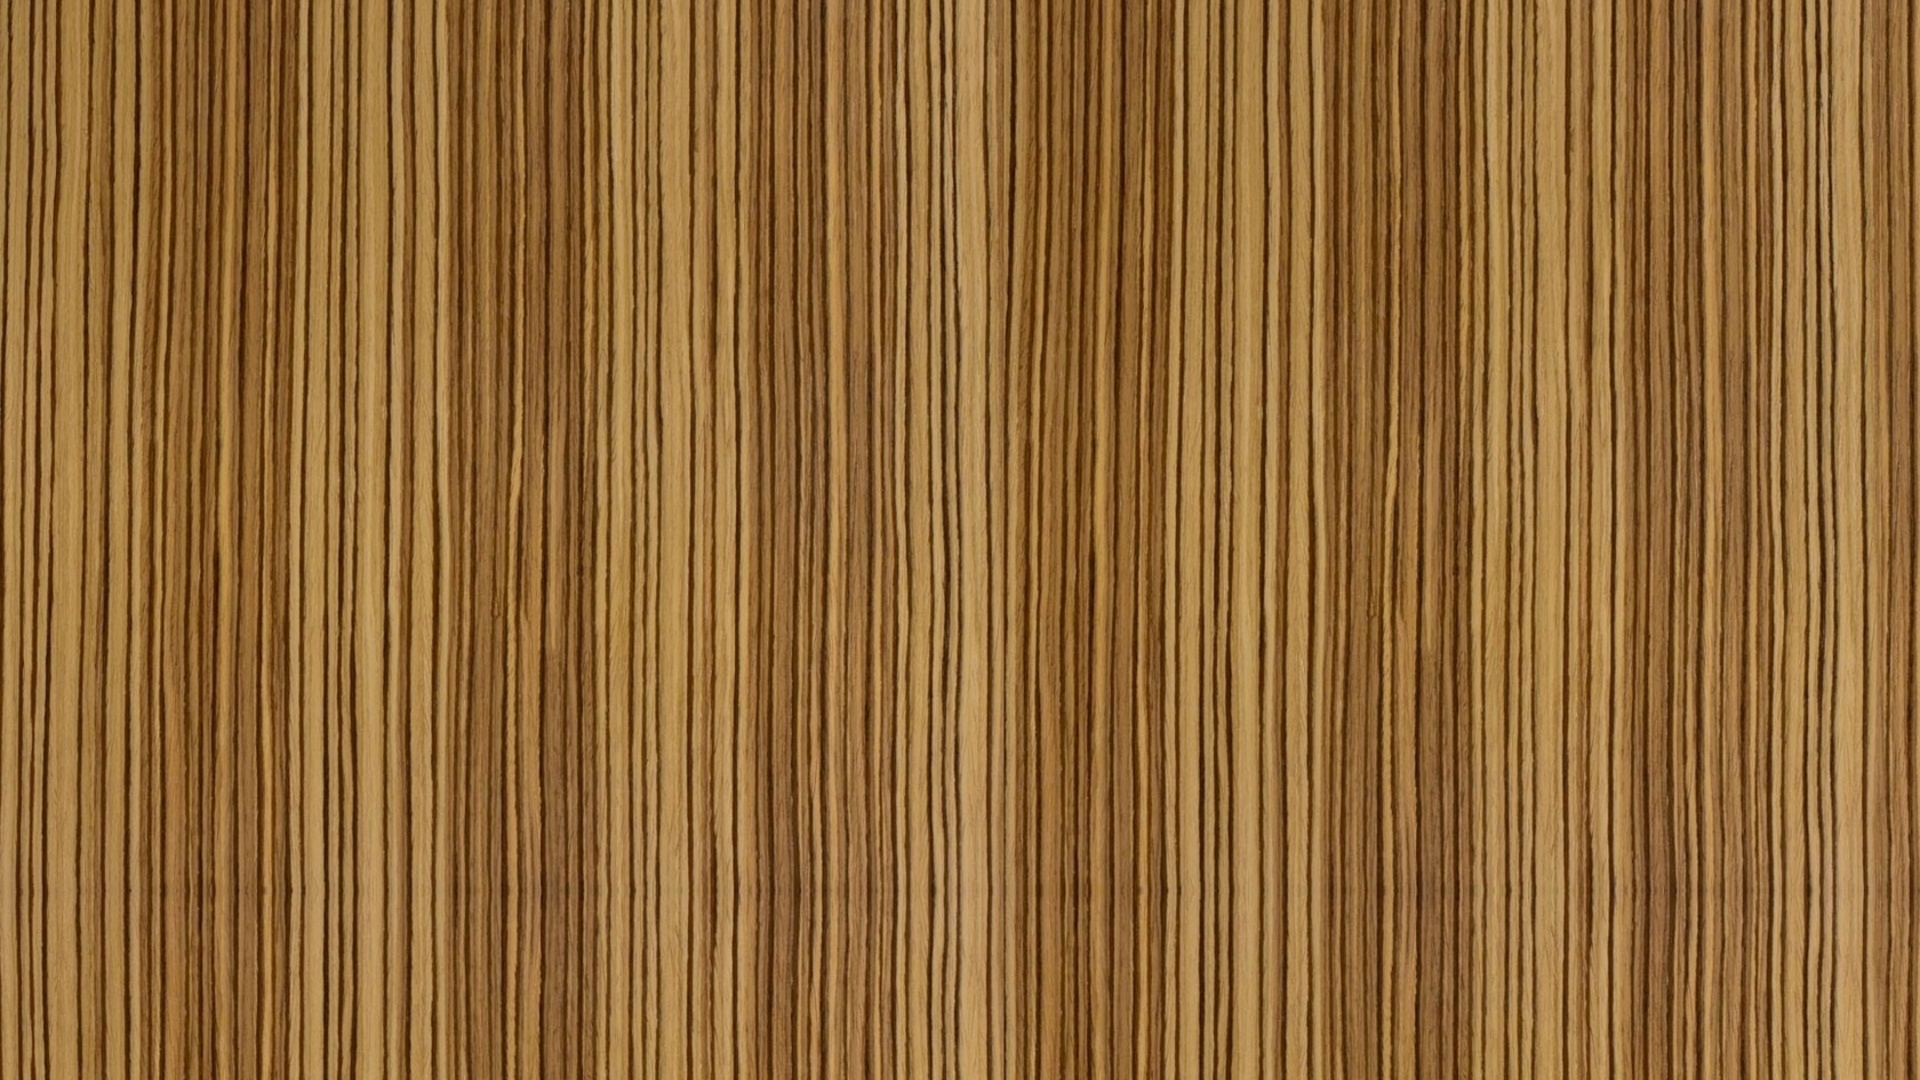 Wood Desktop Wallpaper - WallpaperSafari